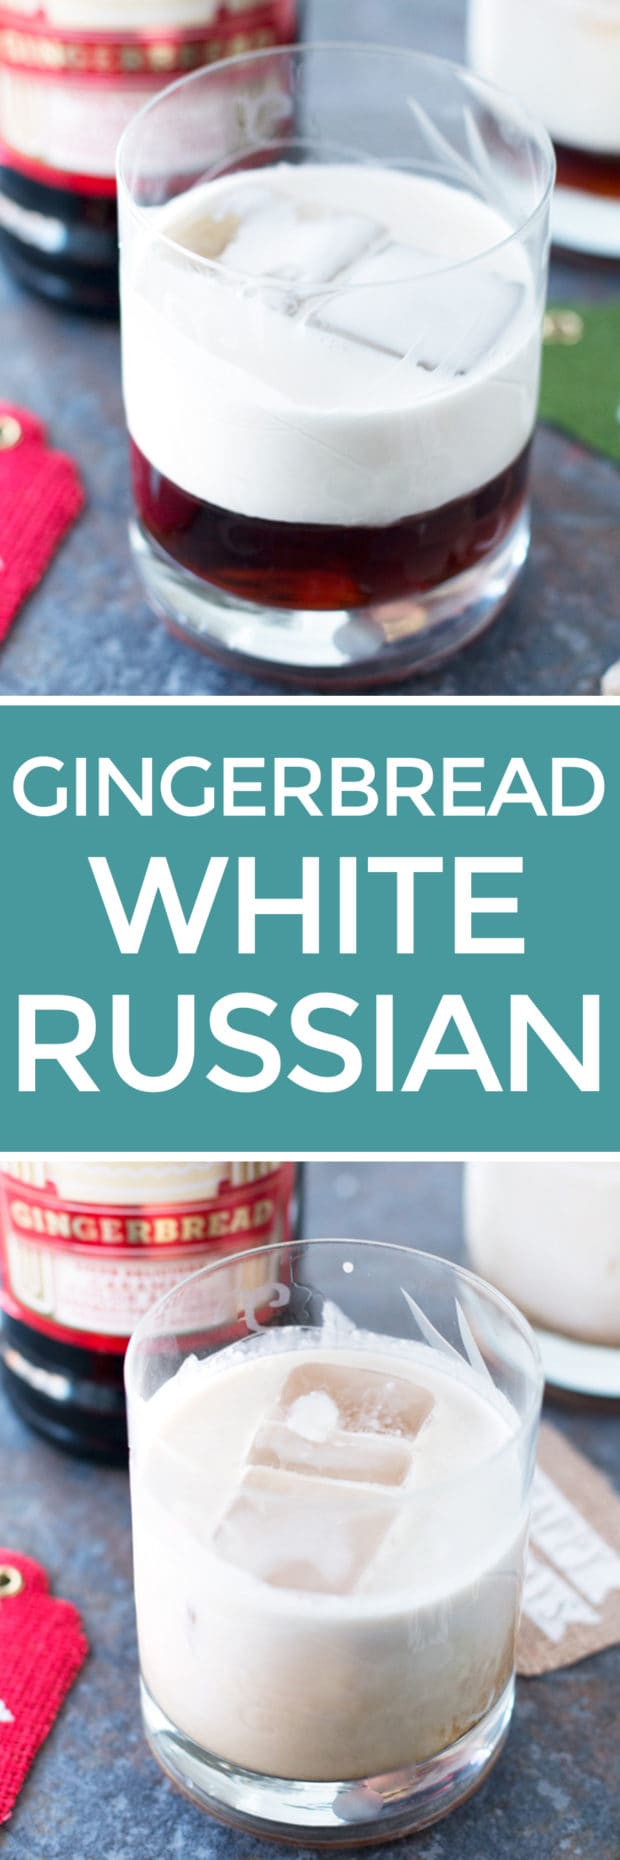 Gingerbread White Russian | cakenknife.com